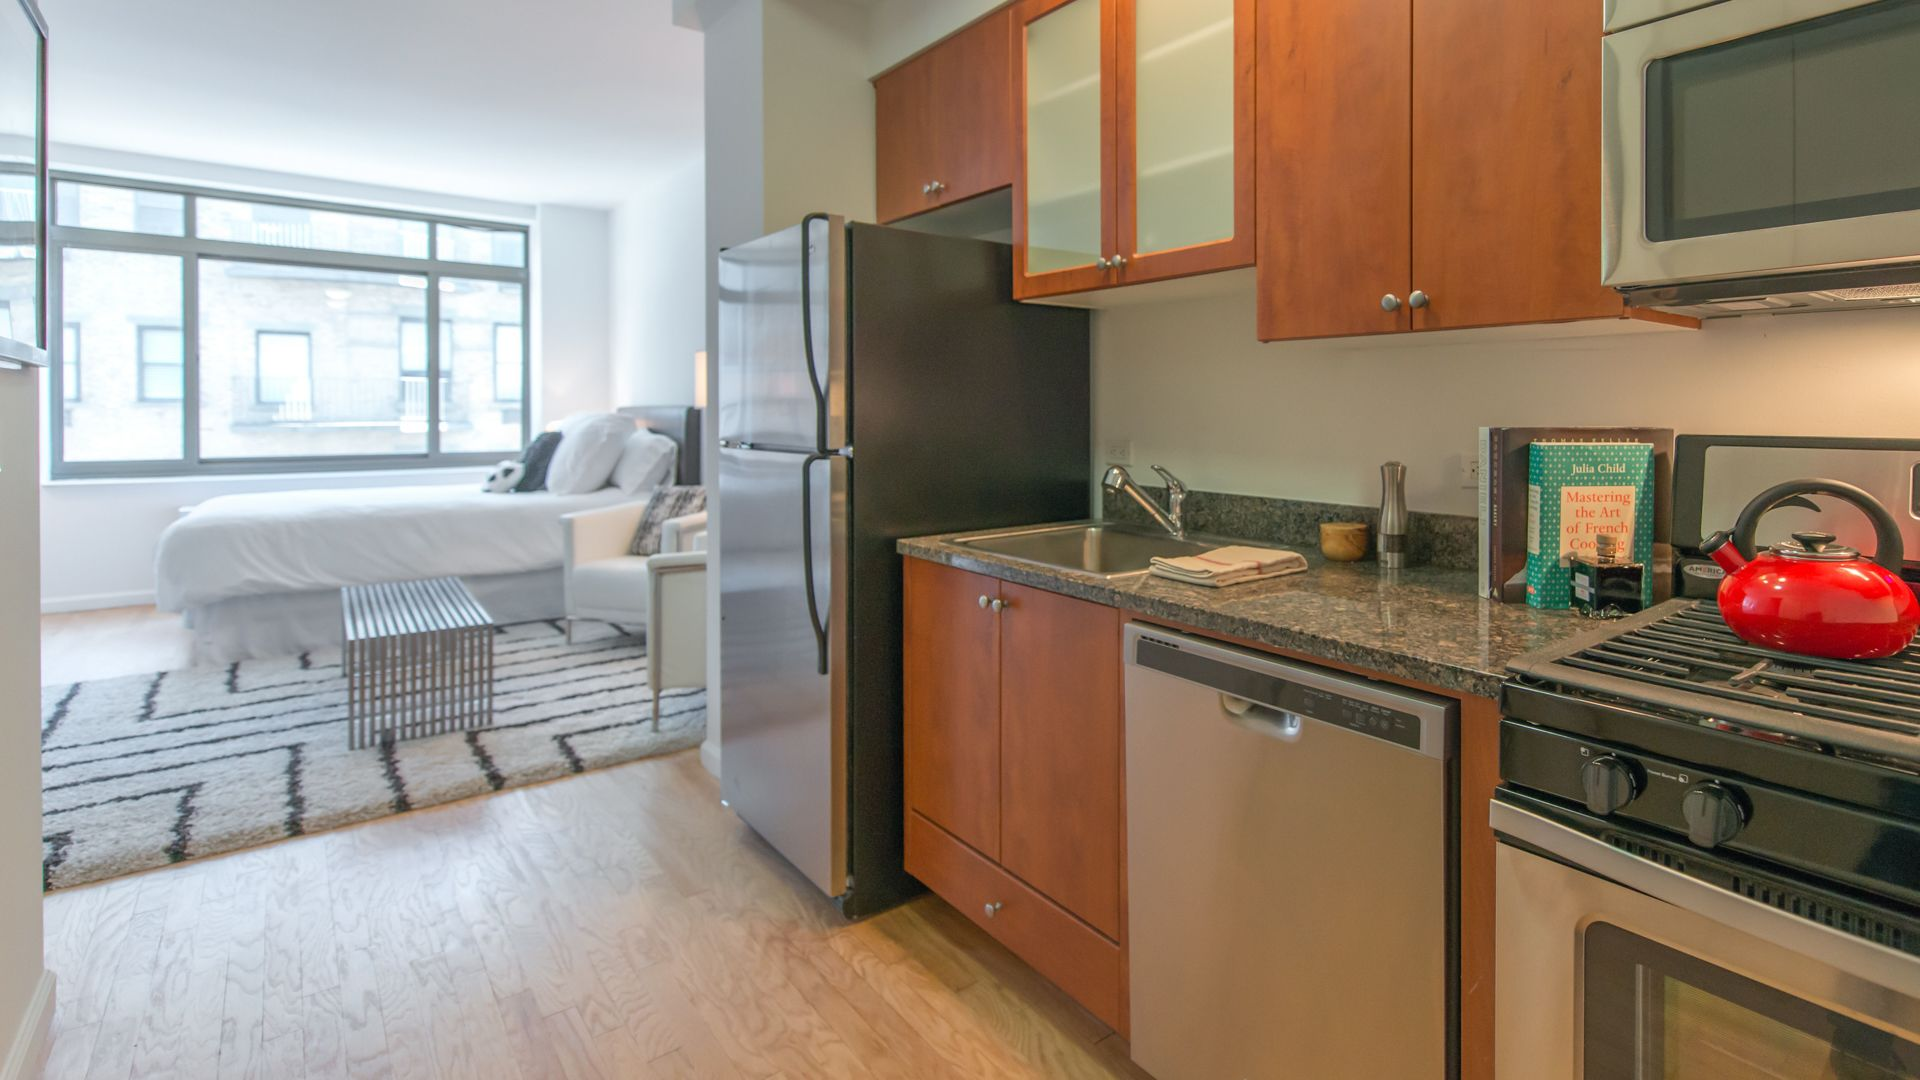 https://media.equityapartments.com/images/c_crop,x_0,y_0,w_1920,h_1080/c_fill,w_1920,h_1080/q_80/2662-10/600-washington-apartments-studio.jpg